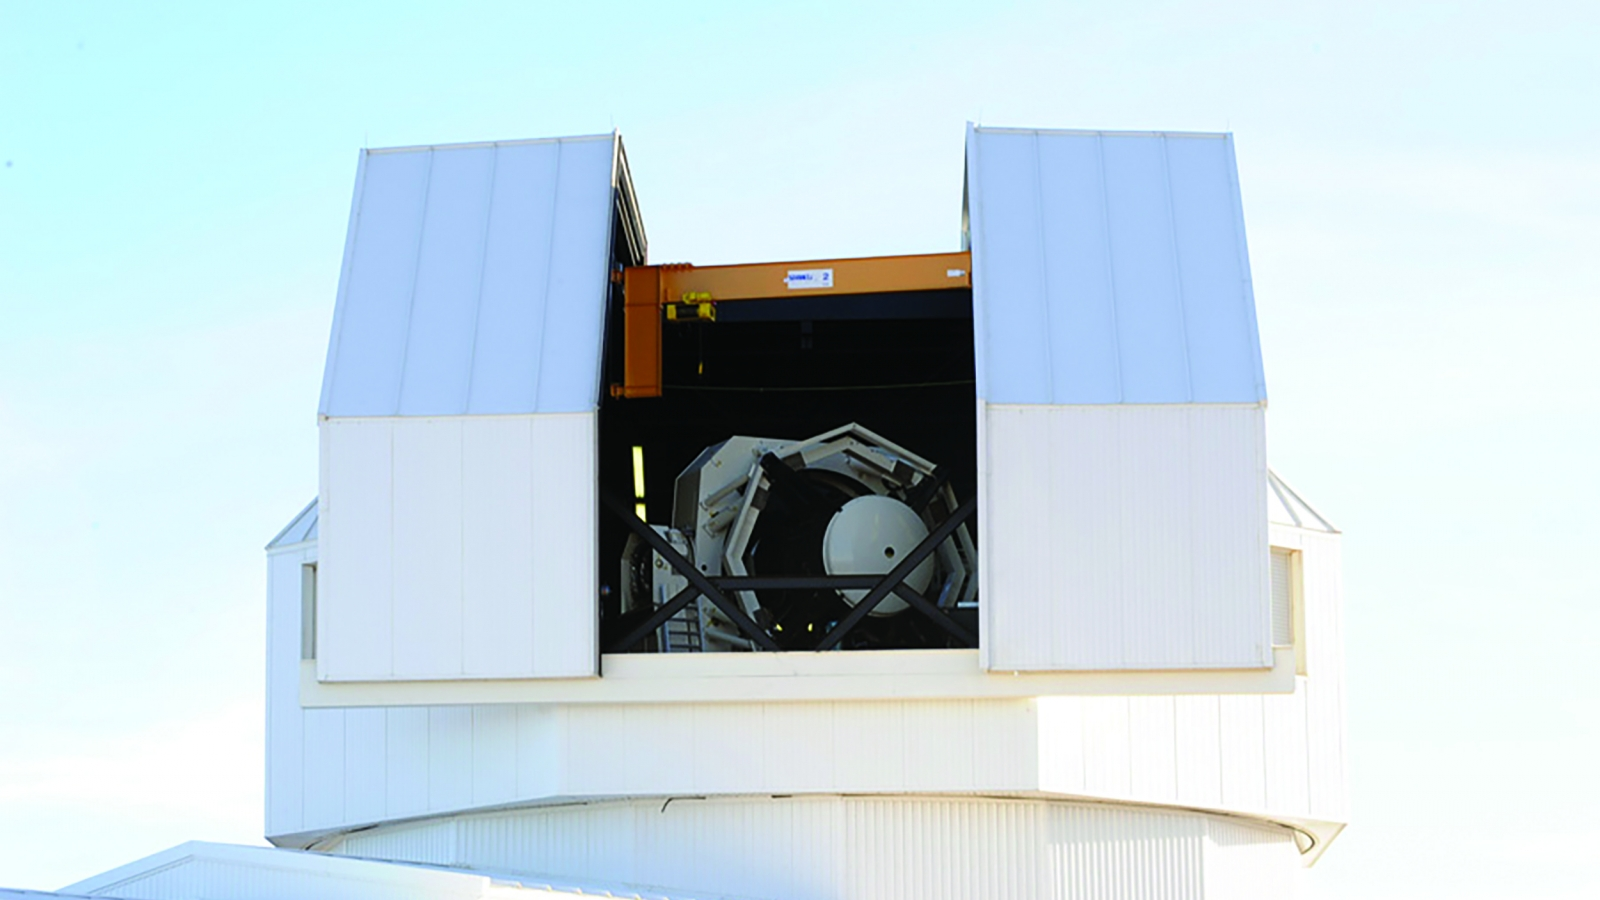 The SST awaits nightfall to be tasked with scanning space from its location atop the Atom Site, a high-altitude observation point in New Mexico that provides a view of the sky that is virtually untouched by light pollution.